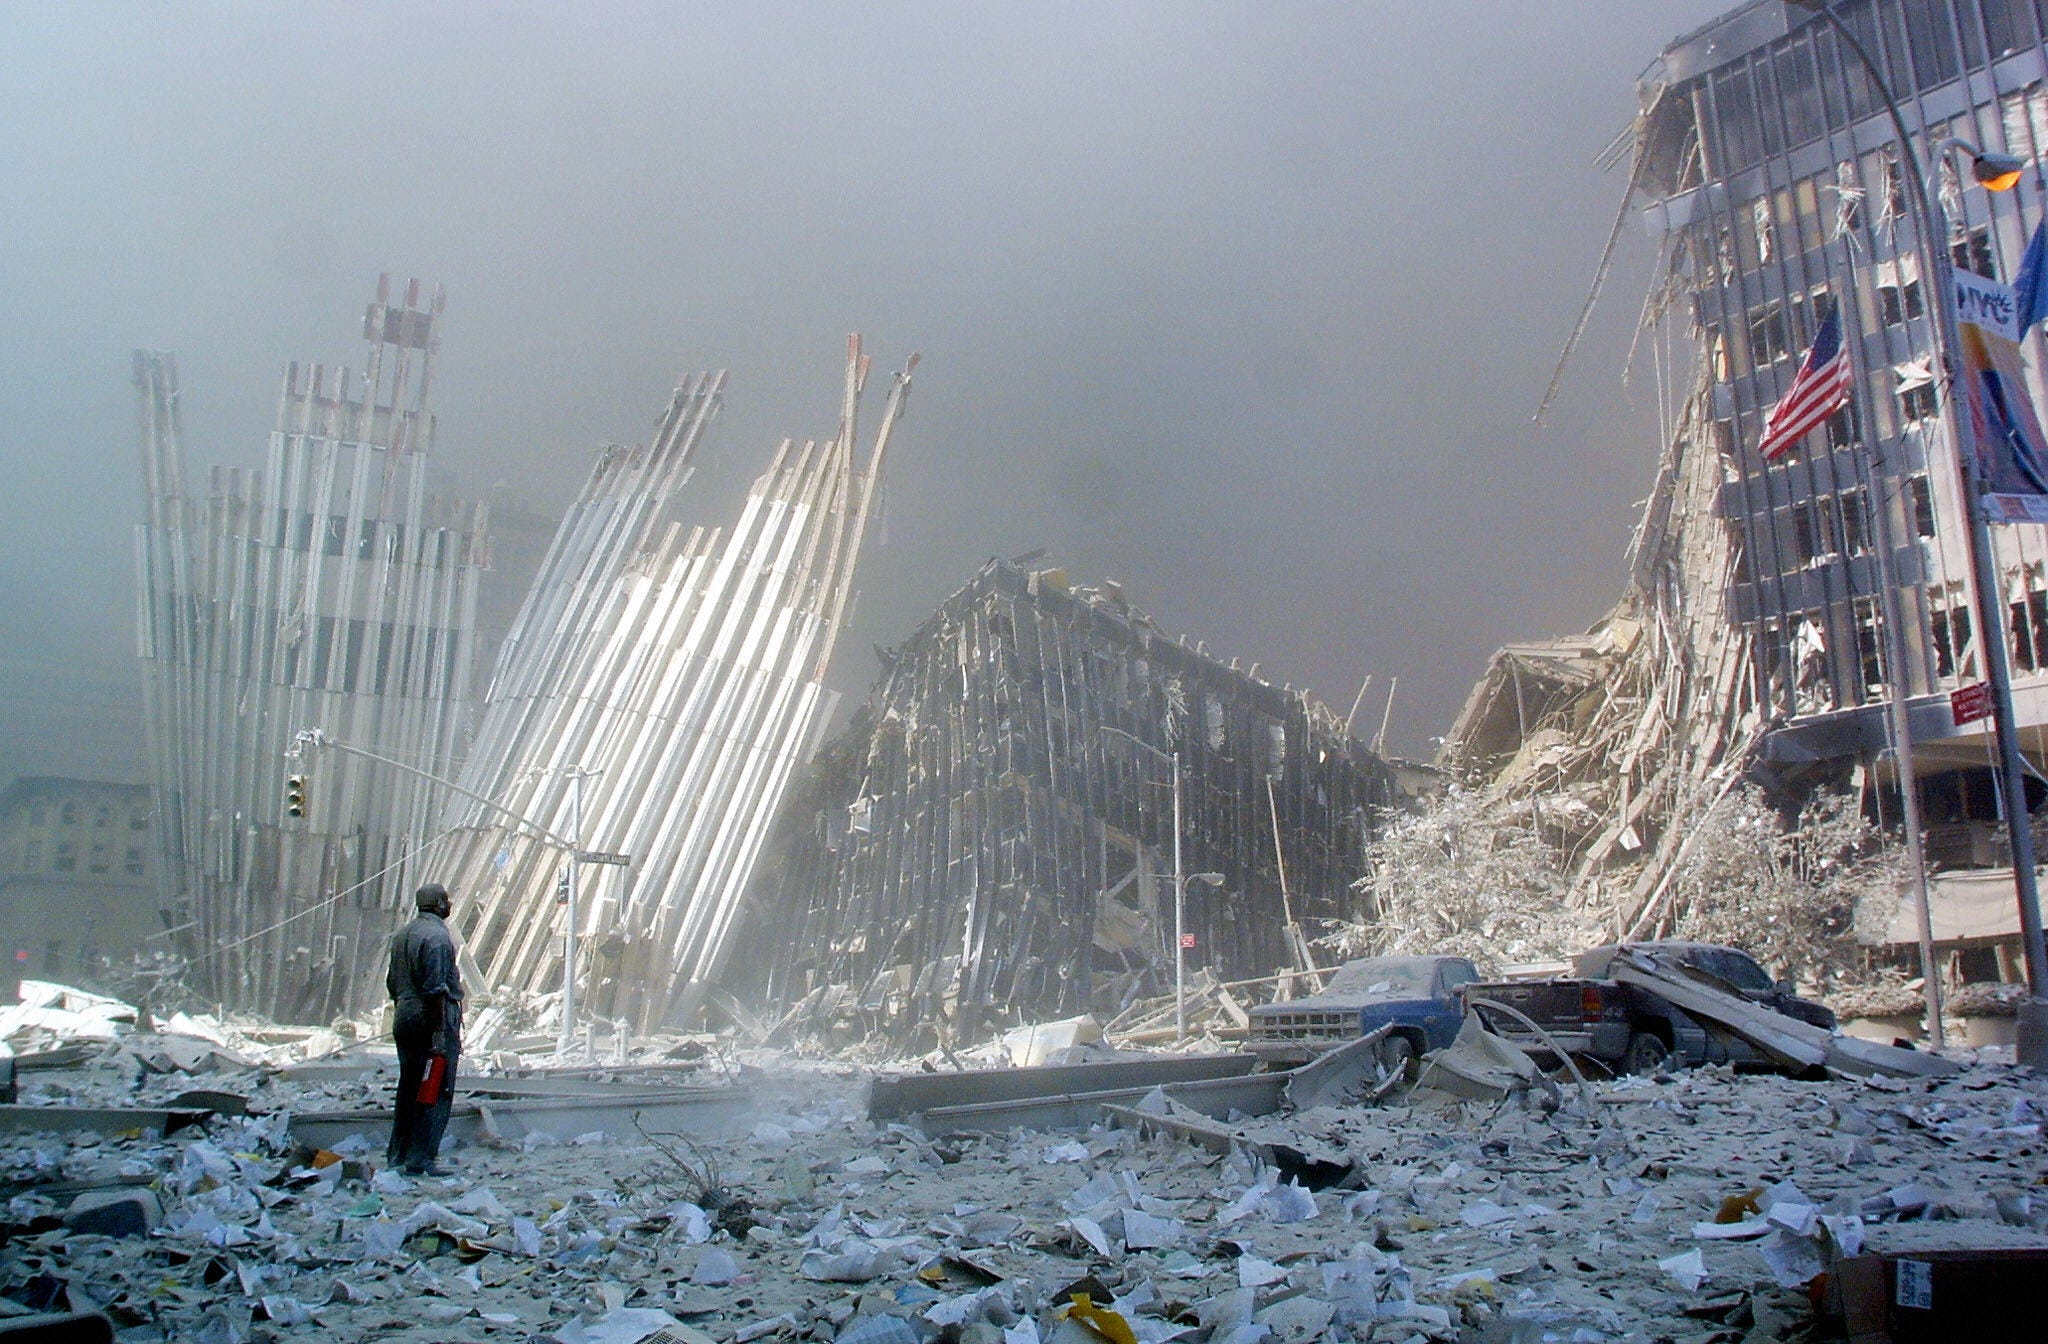 A man calls out for survivors amid the rubble of the first World Trade Center tower in New York.